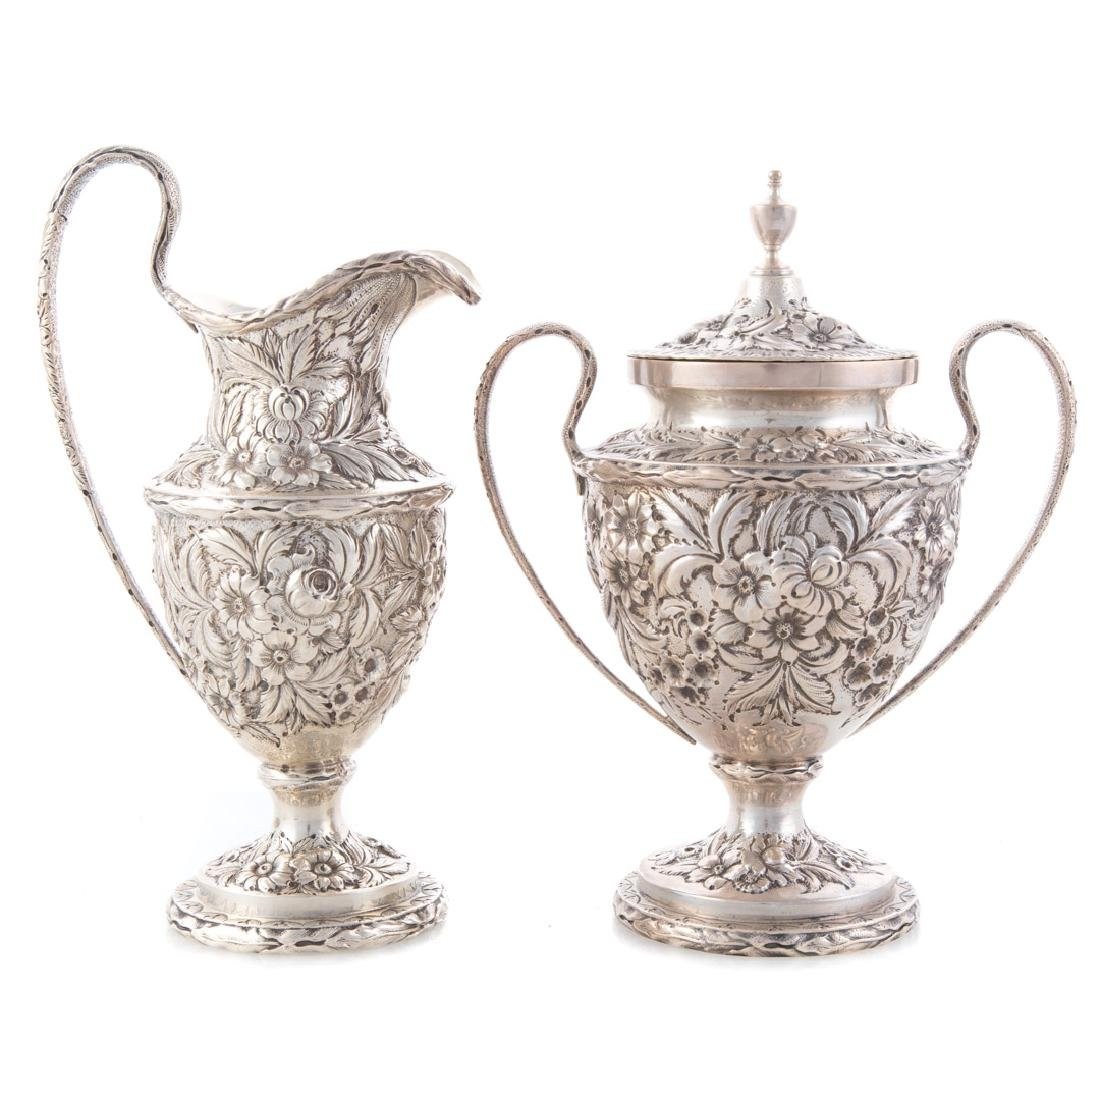 Kirk repousse sterling silver tea service - 3